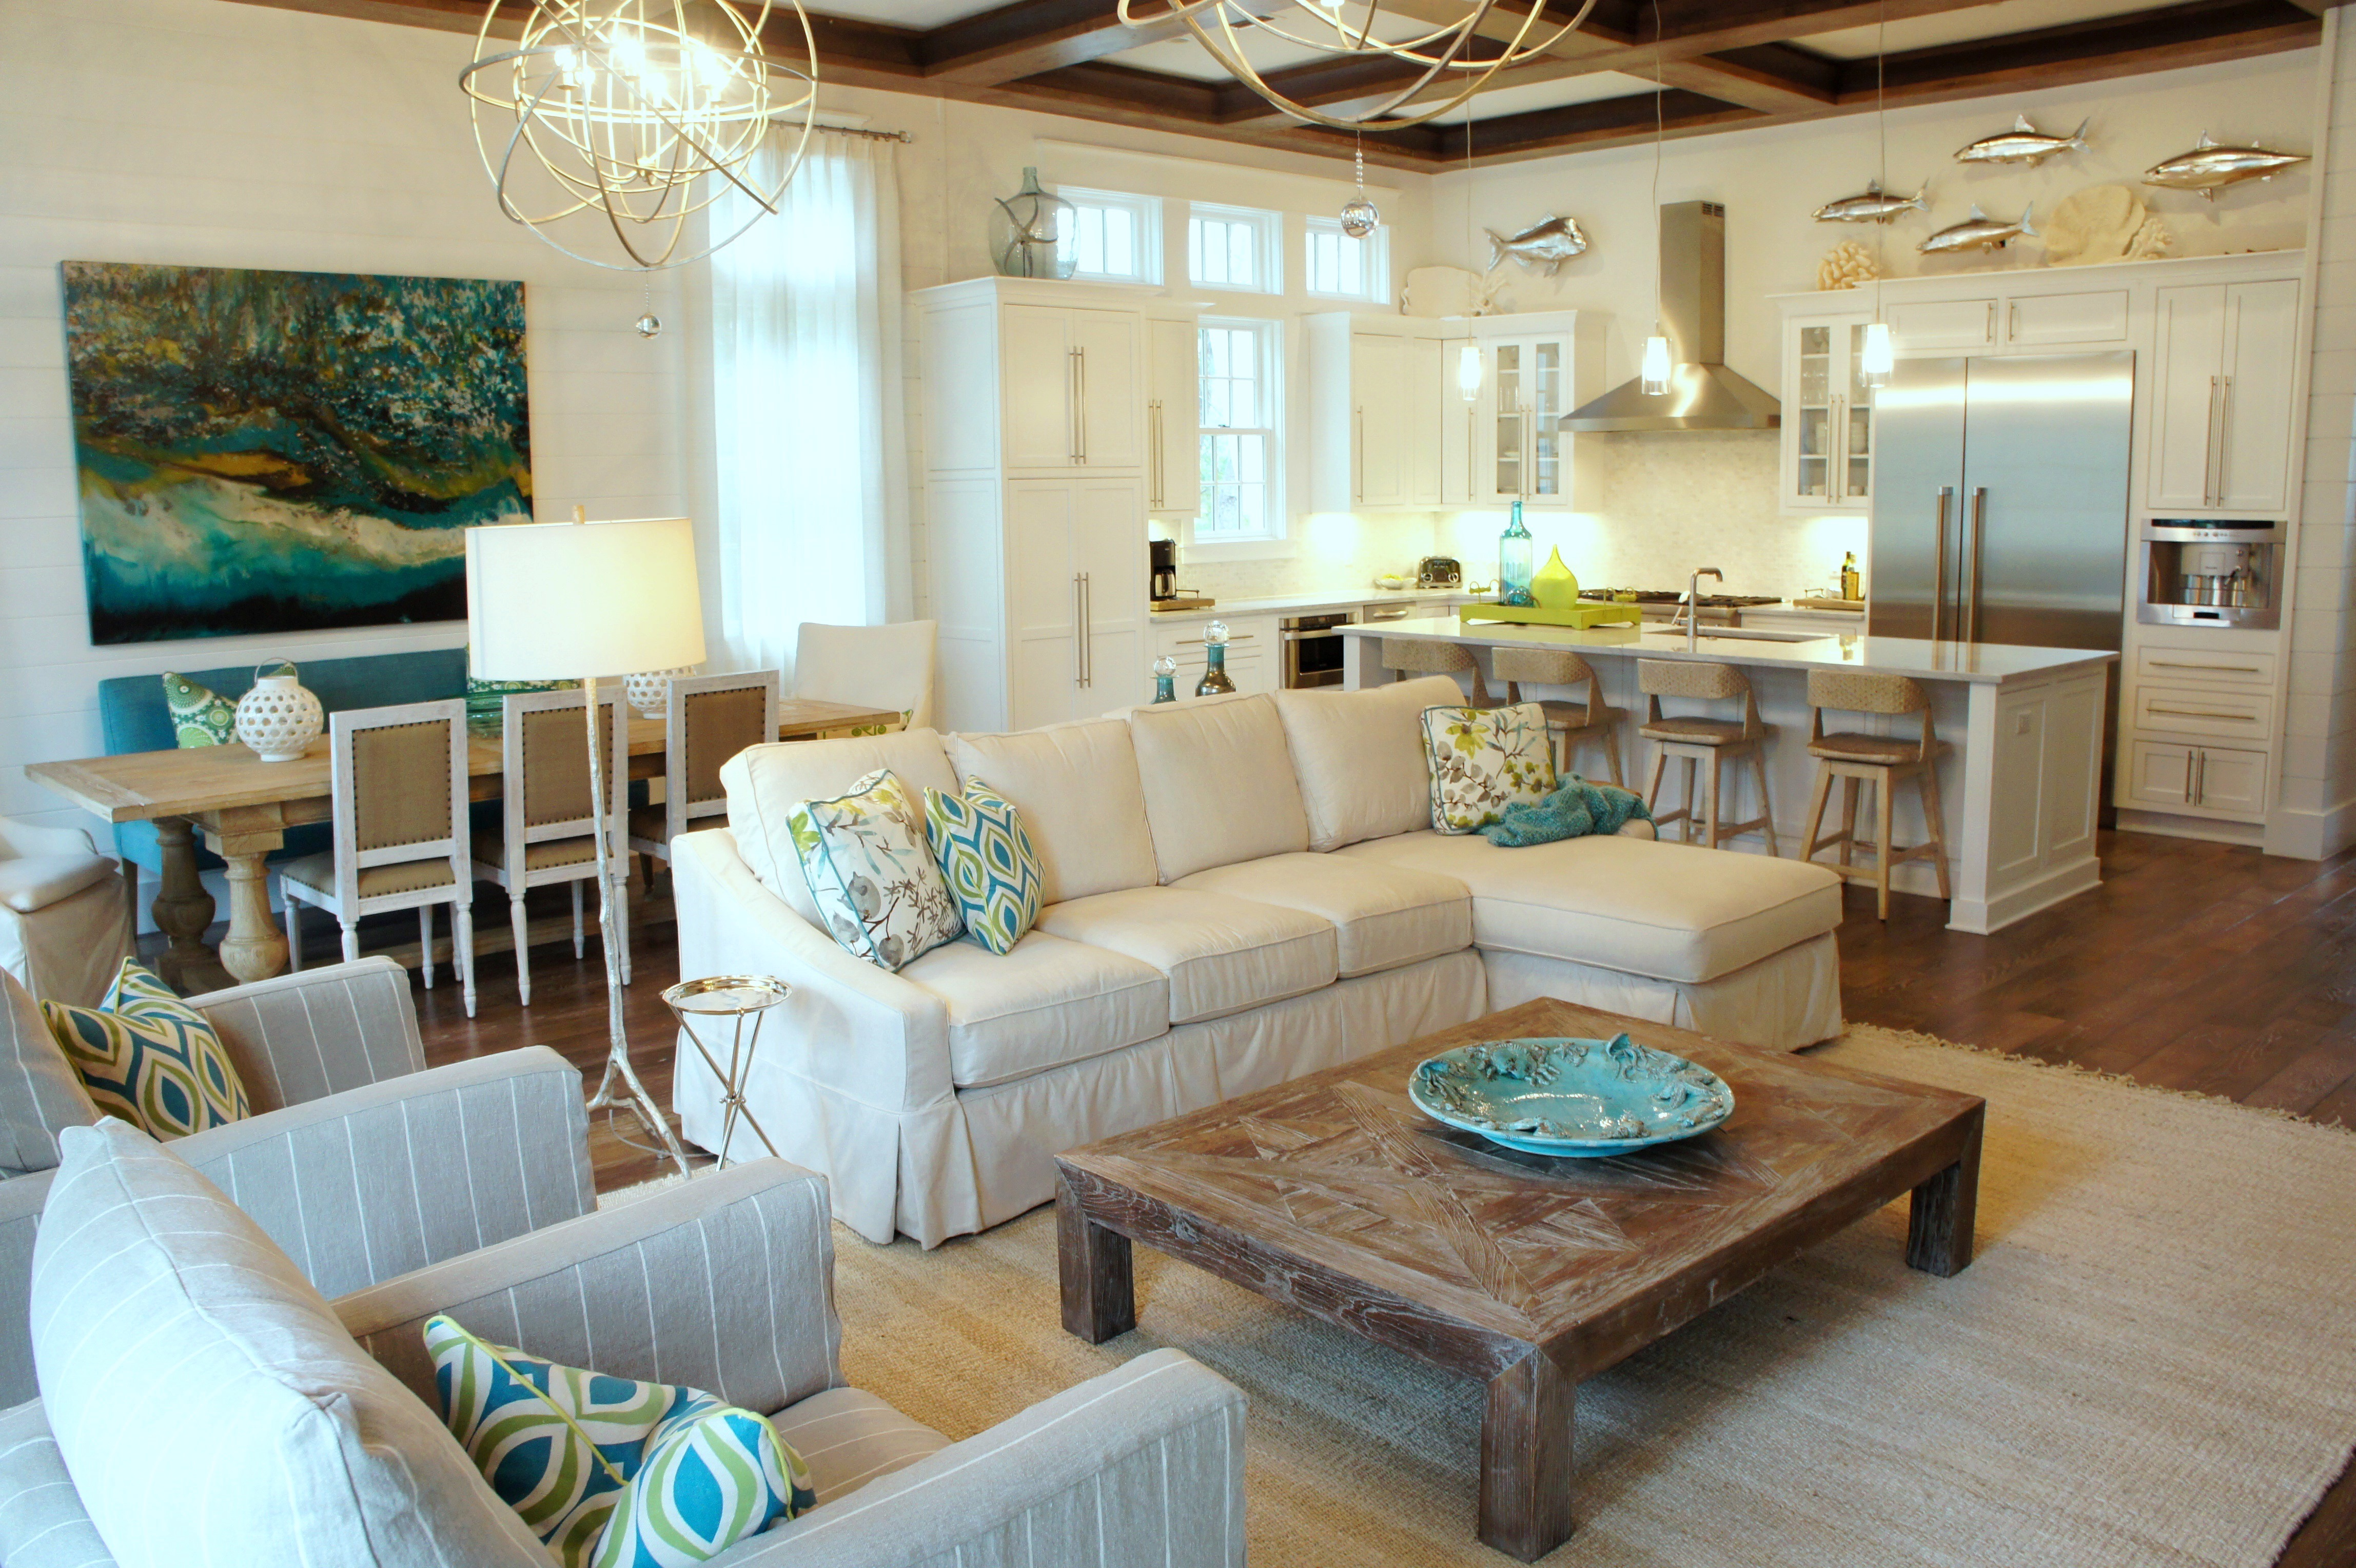 Design SMALL On Pinterest Good Housekeeping House Plans And